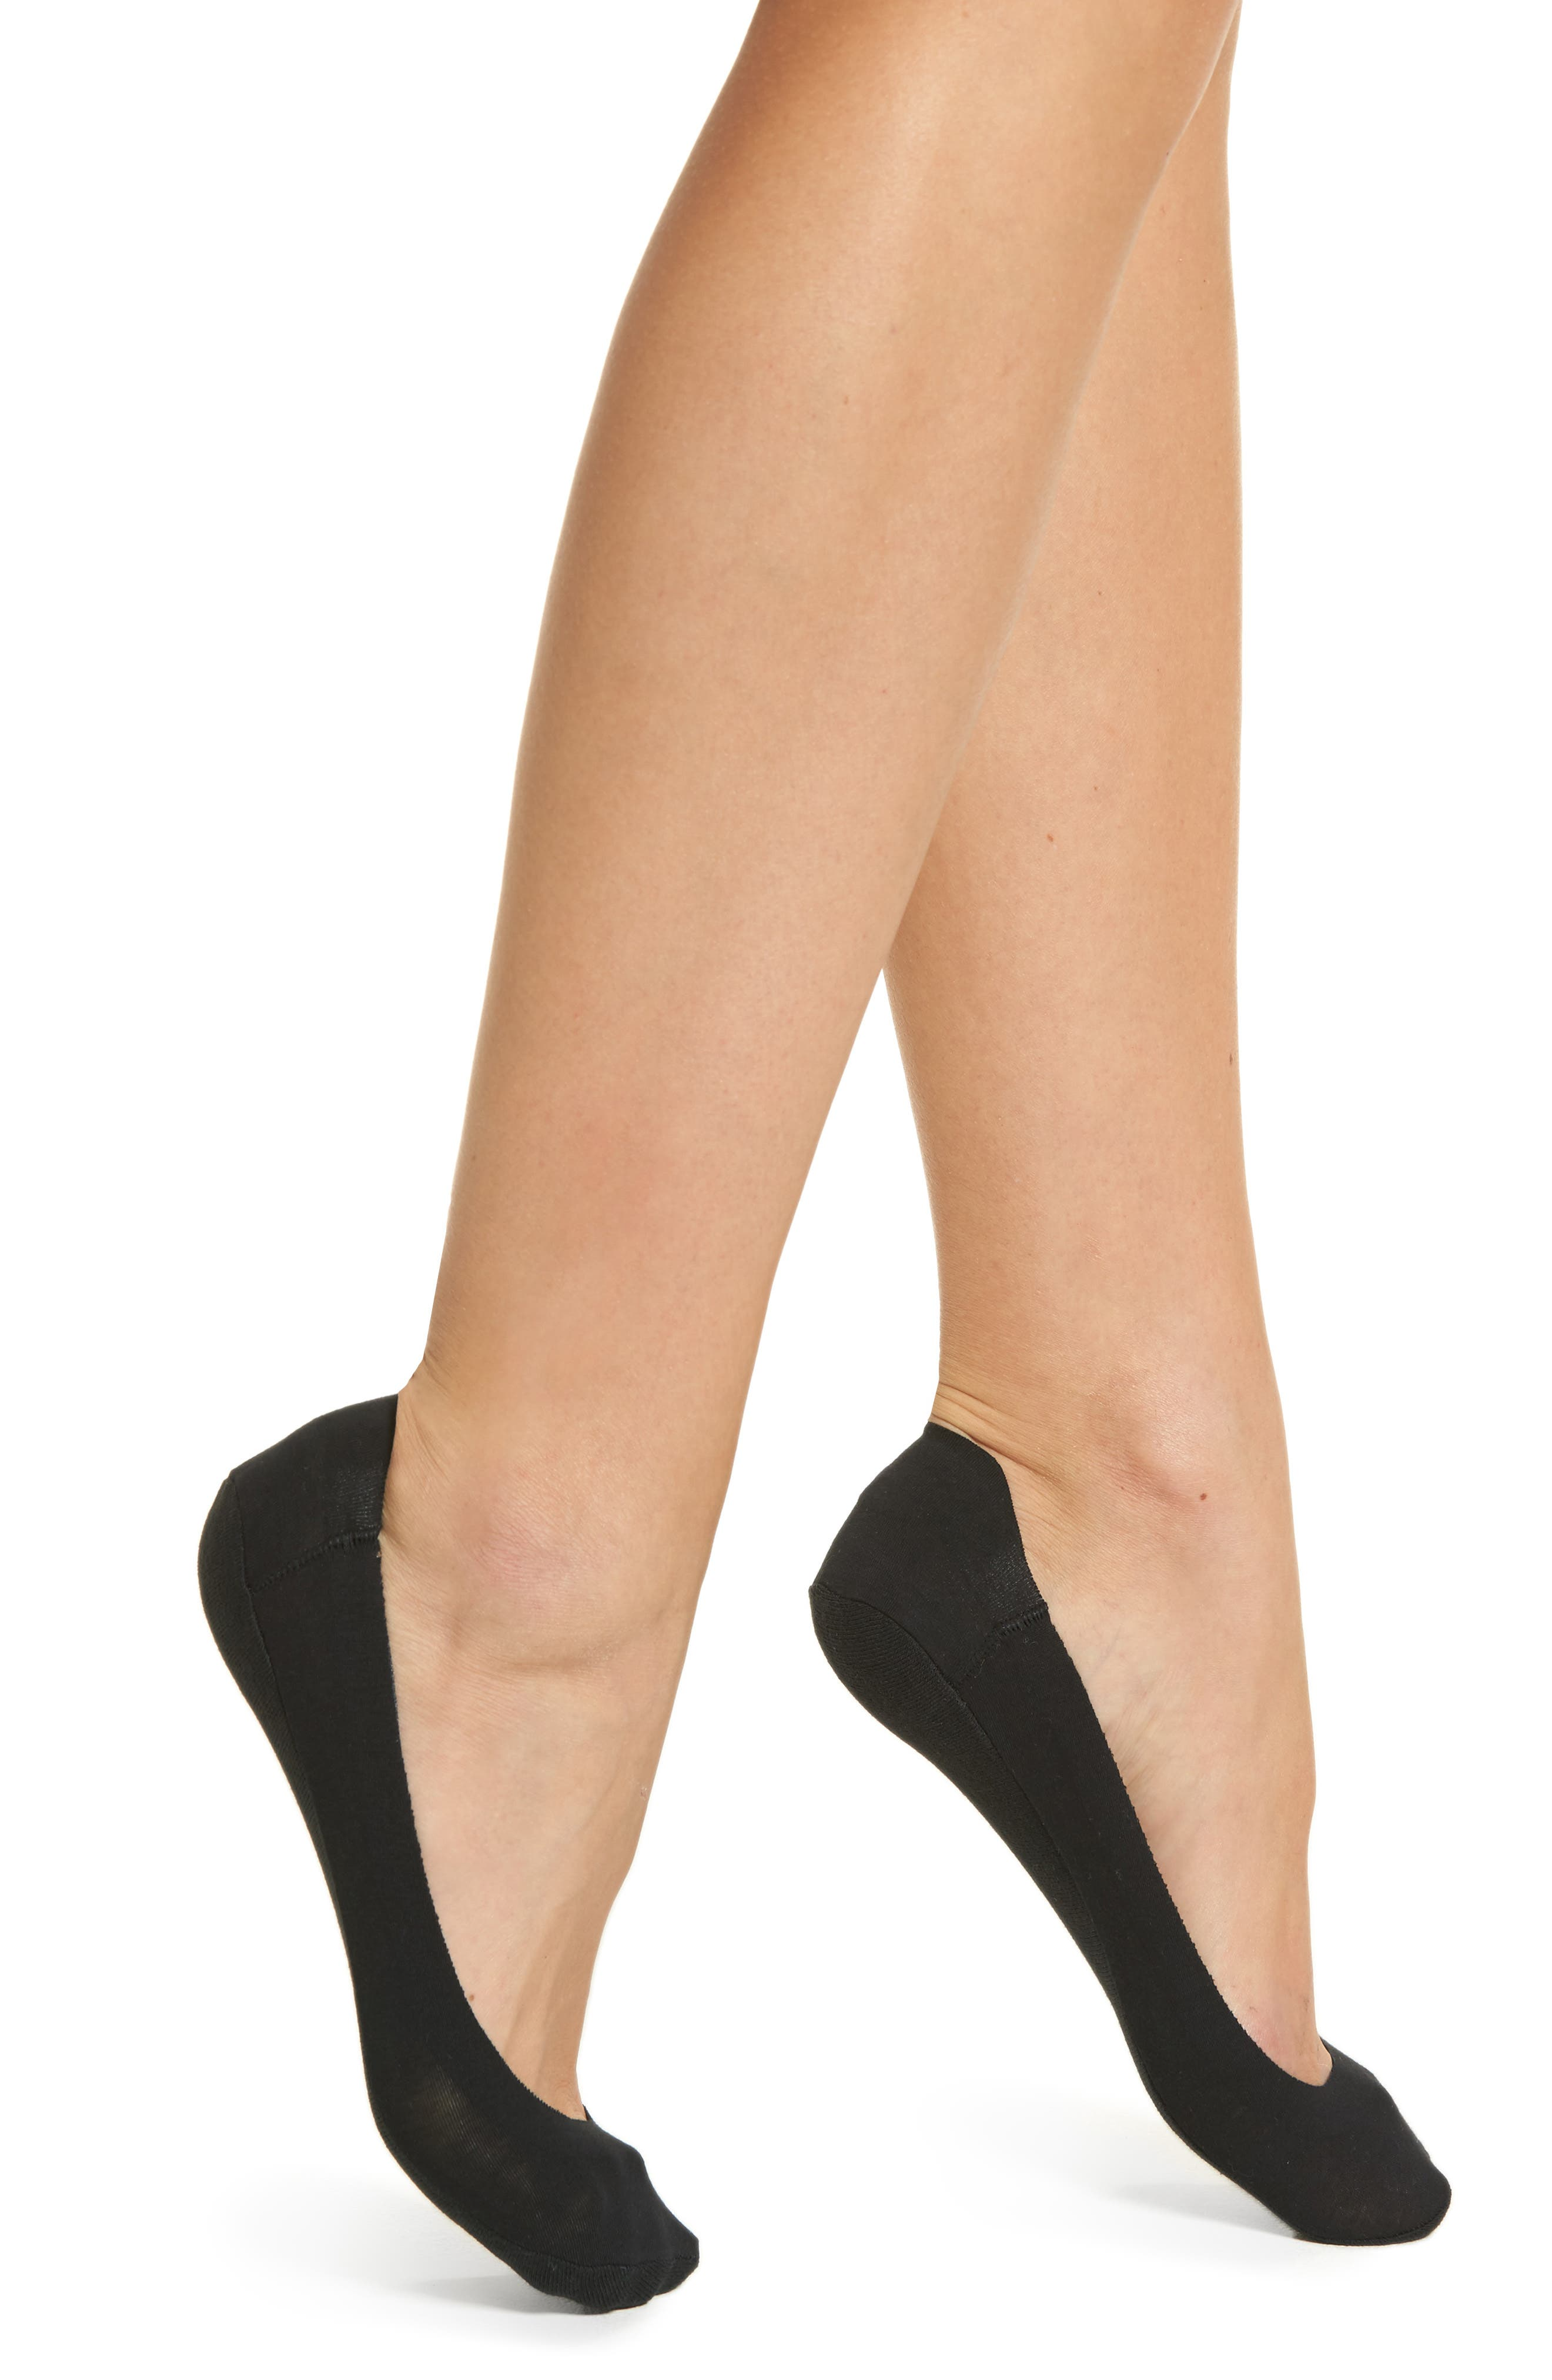 Alternate Image 1 Selected - Hue Perfect Edge No-Show Liner Socks (3 for $16)